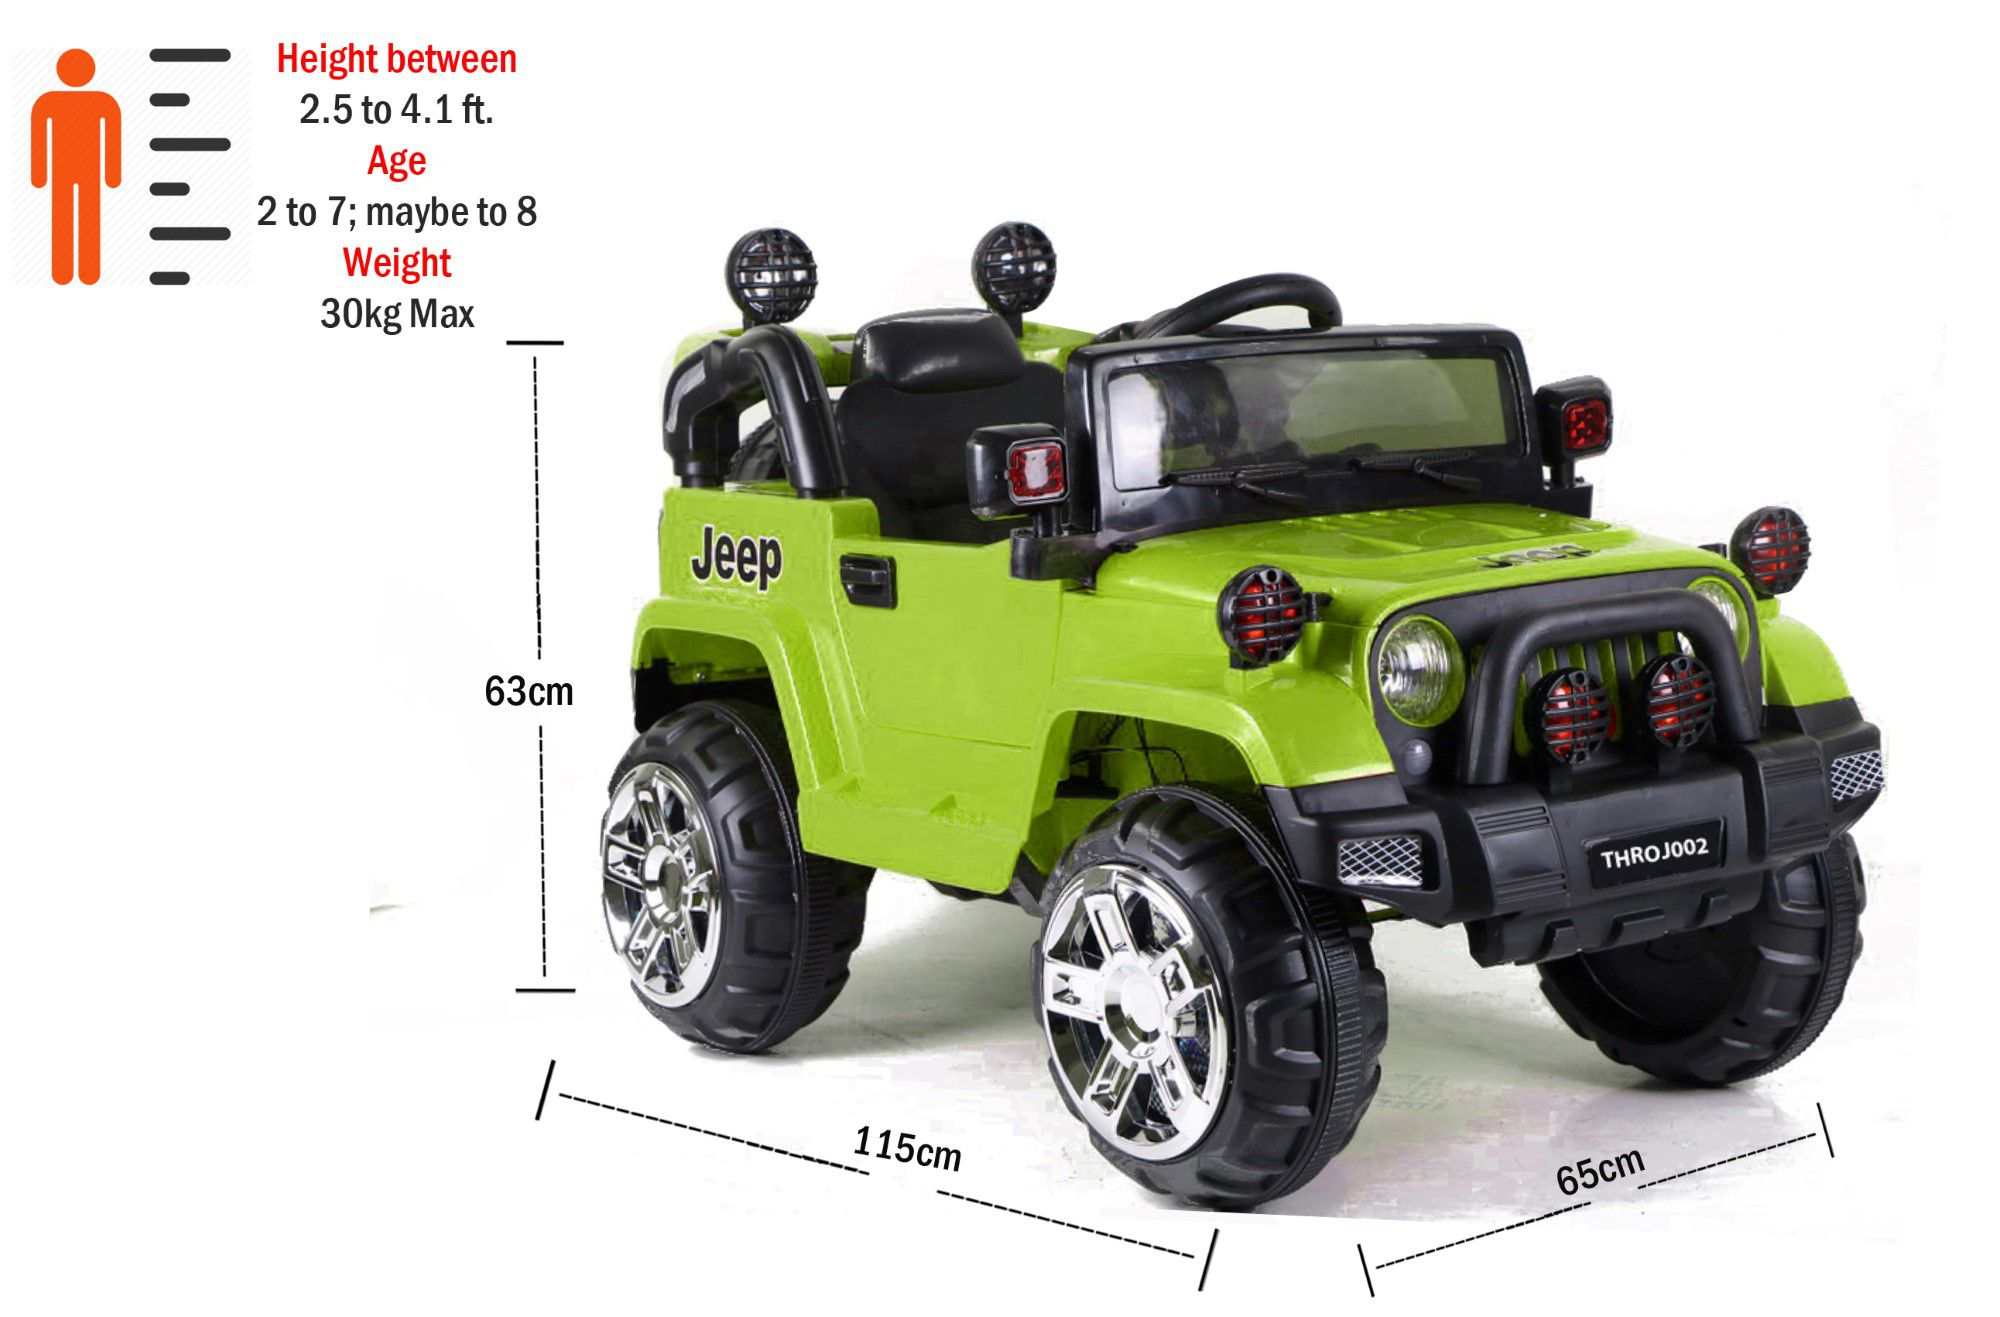 Toyhouse-Off-Roader-Jeep-Rechargeable-SDL765846018-2-2491a Take A Look About Jeep Dog Accessories with Captivating Gallery Cars Review